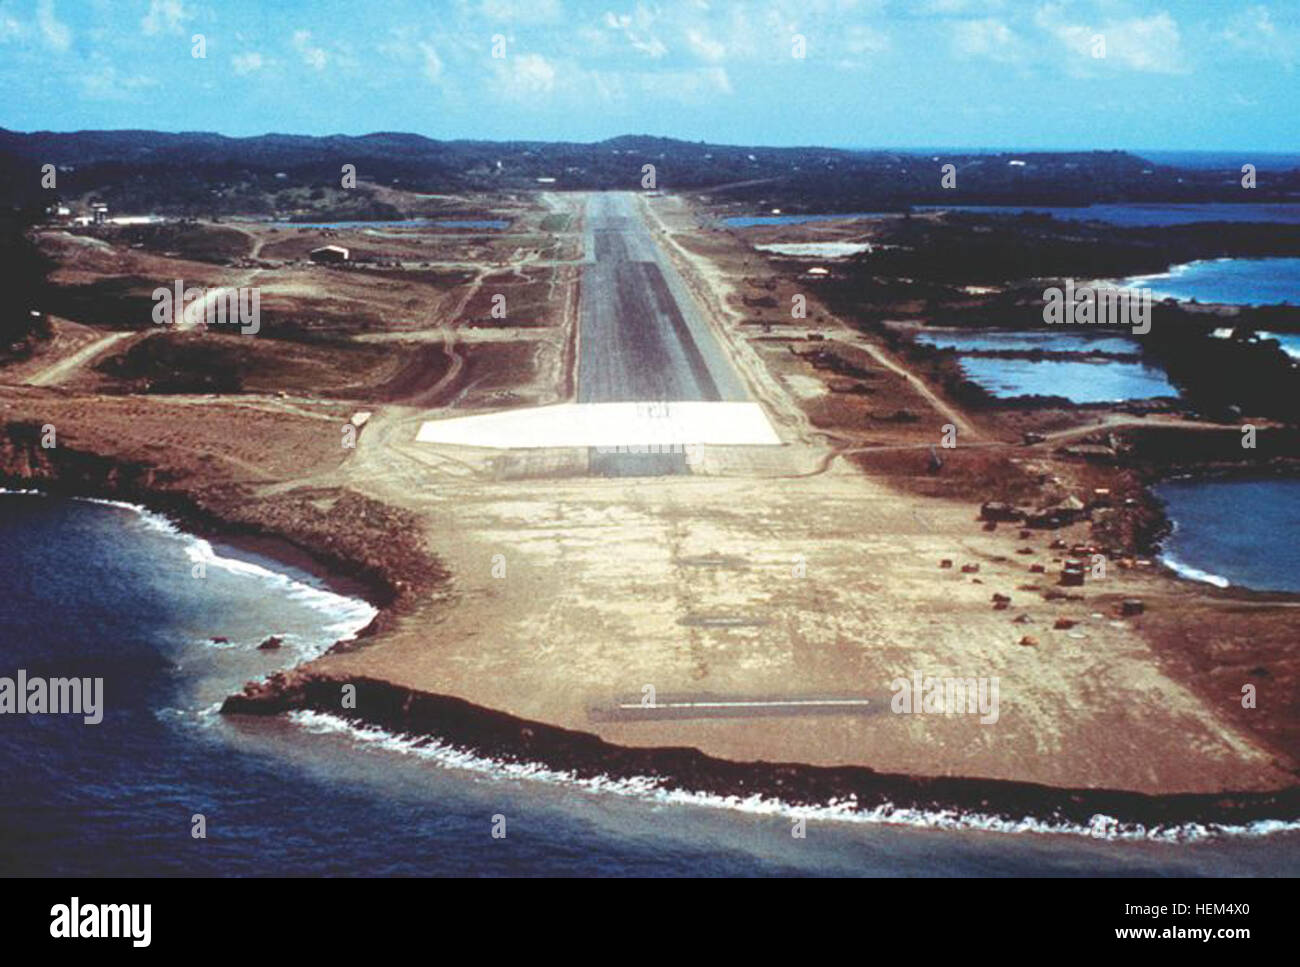 An aerial view of the approach to Point Salines Airport, taken during Operation URGENT FURY. Point Salinas International - Stock Image